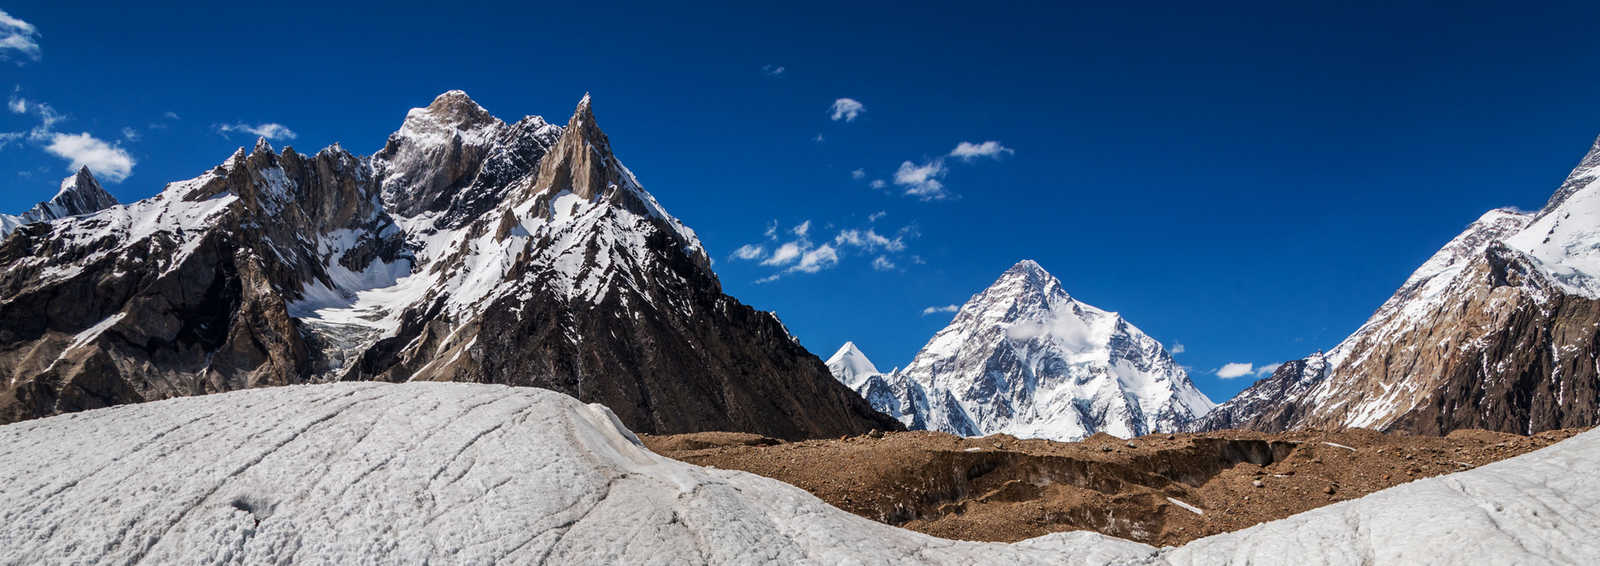 Mt.K2 reflection view from Concordia, Pakistan